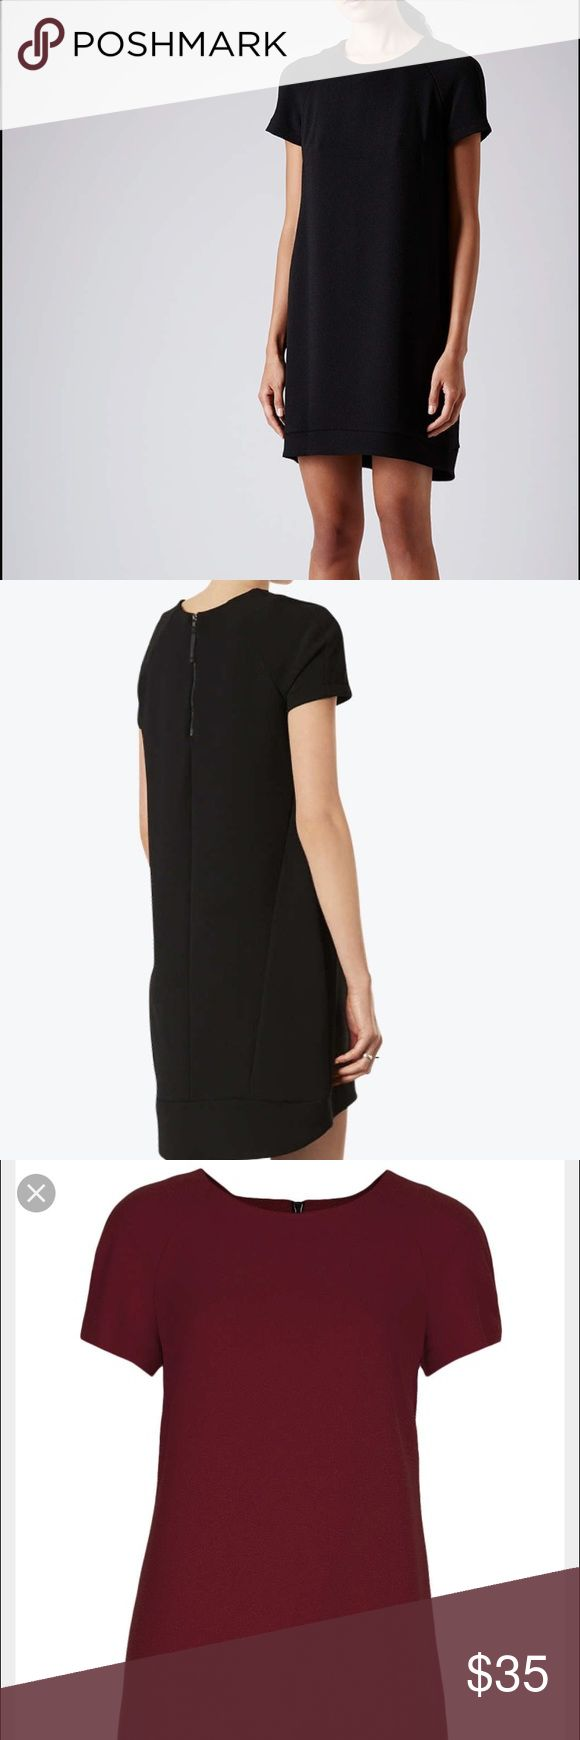 TOPSHOP crepe dress TOPSHOP for Nordstrom! One crewneck in mulberry (maroon) and one in black. Crepe shift dress. Great for every occasion! Dress it up or dress it down. Detail- zipper in back for added style Topshop Dresses Mini